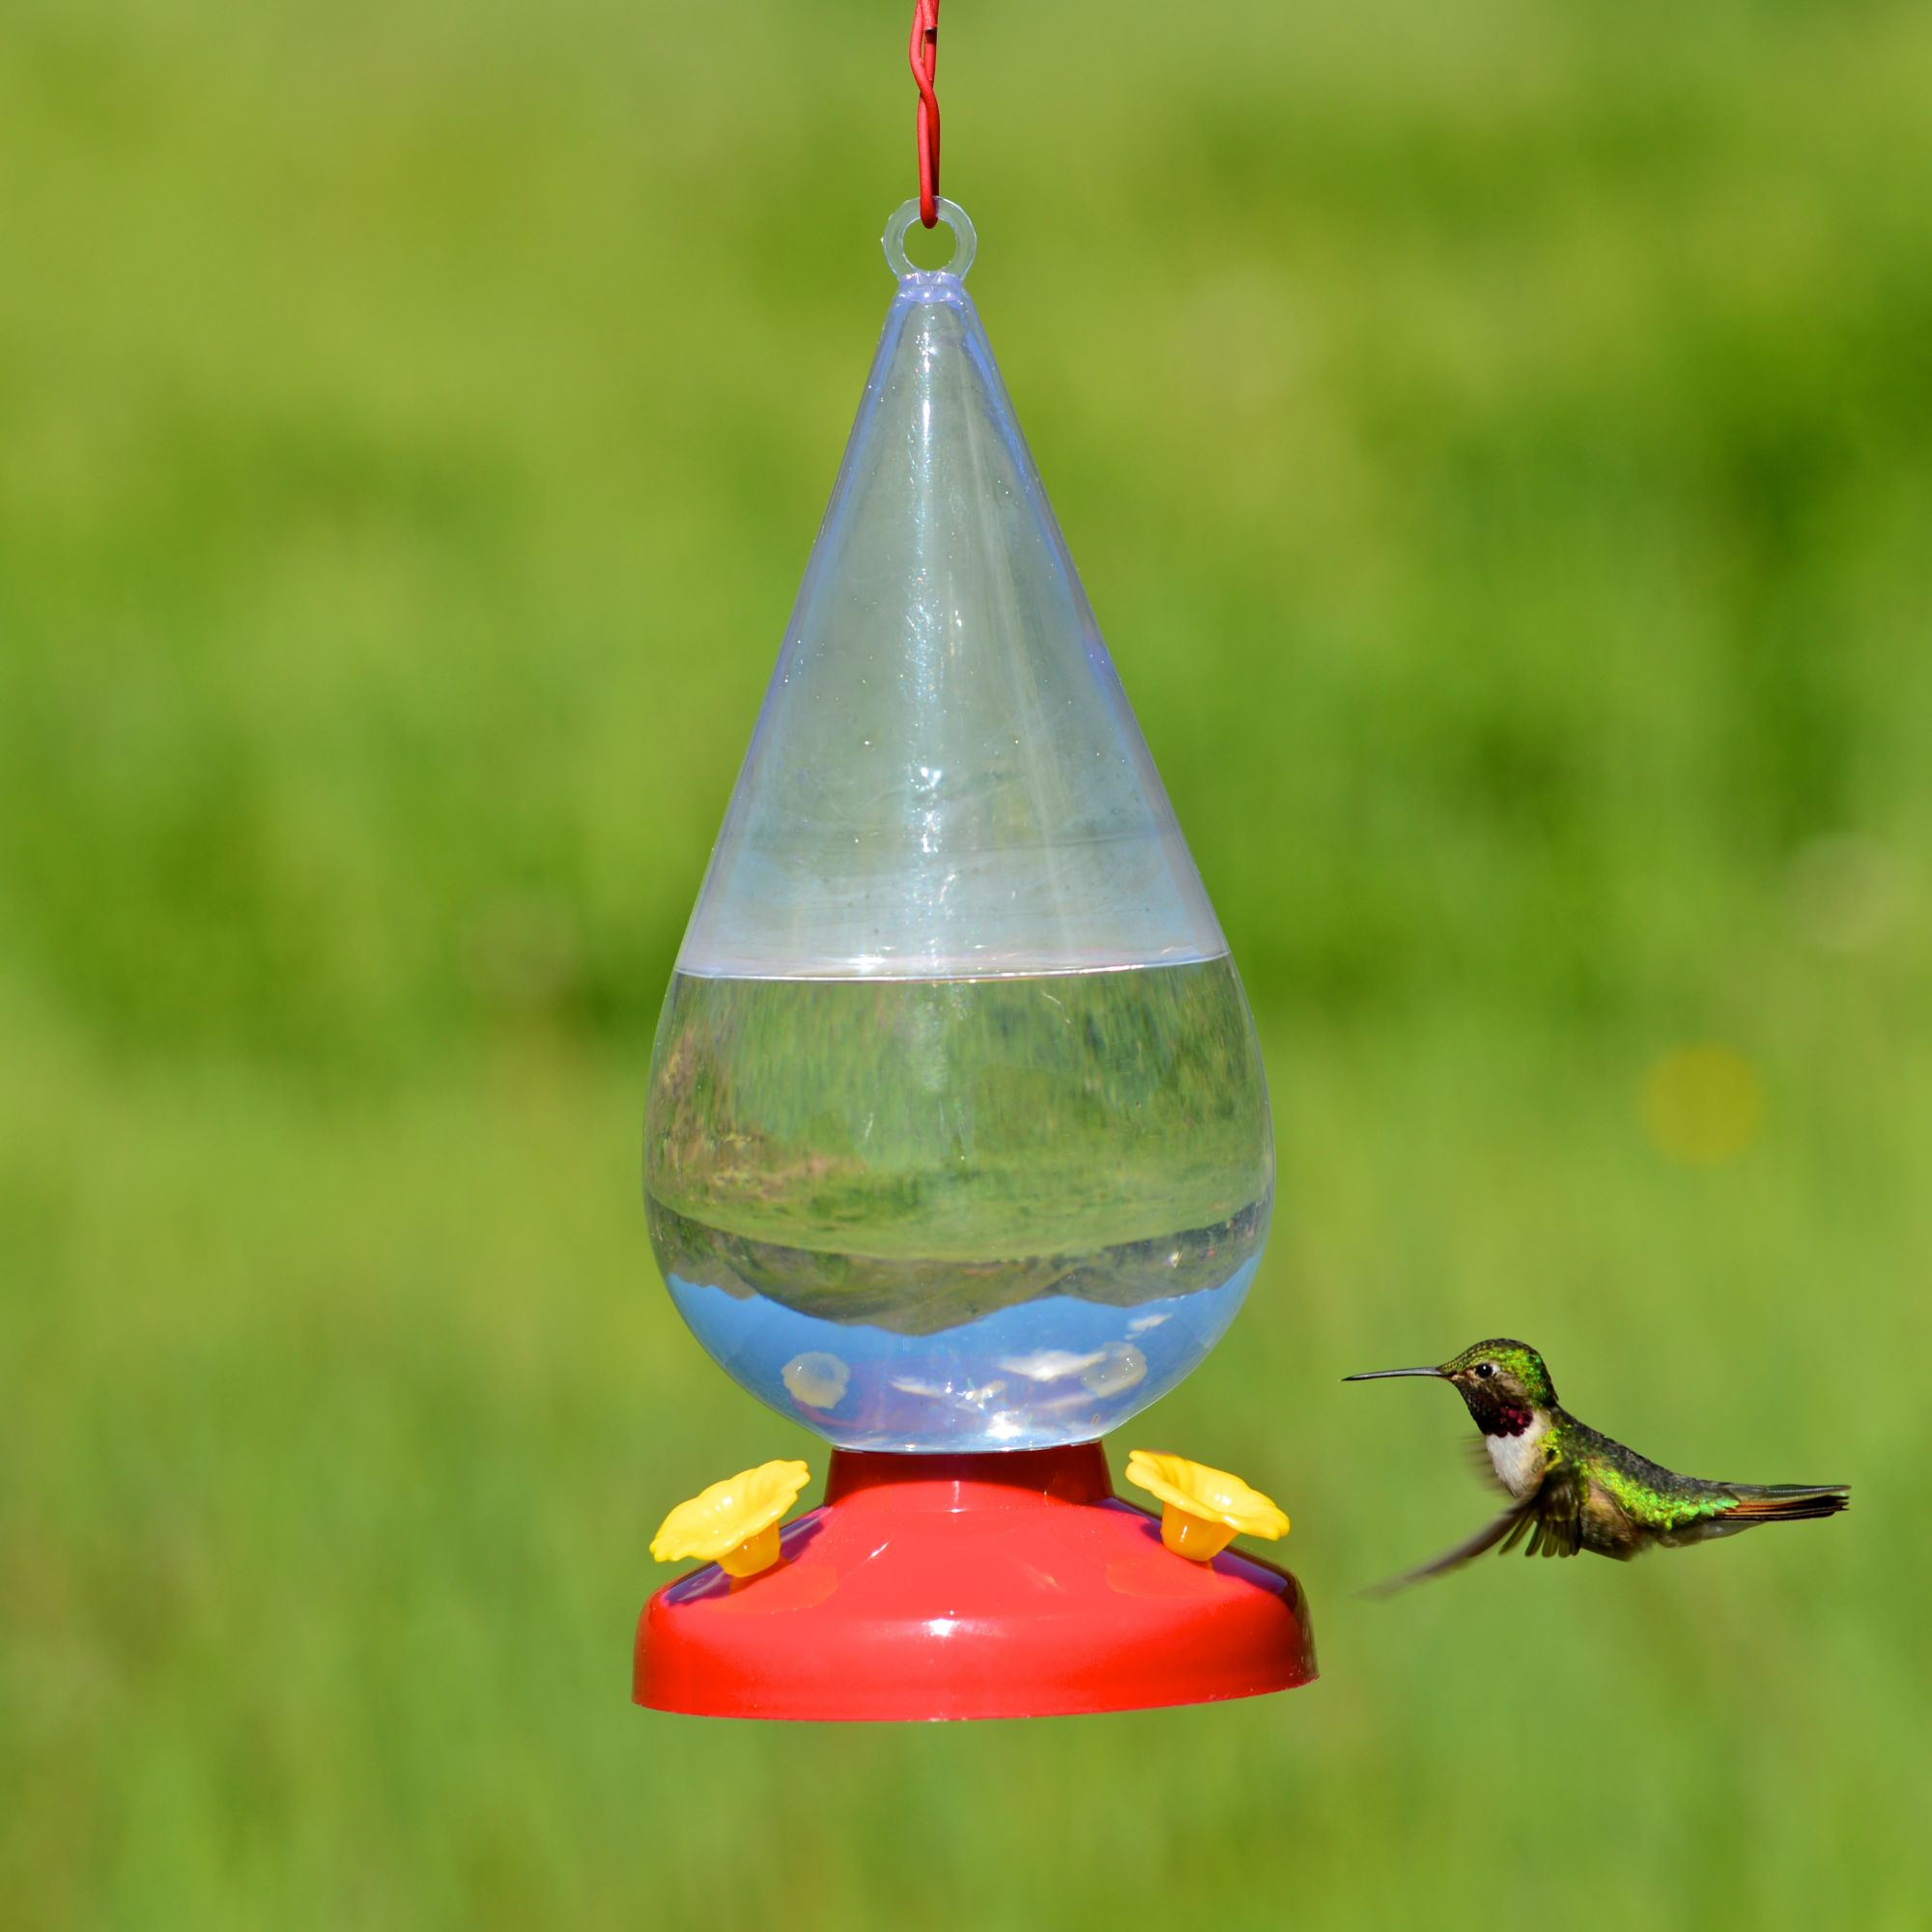 pet bf elegant hummingbird copper com perkypet model perky glass decorative us feeder feeders